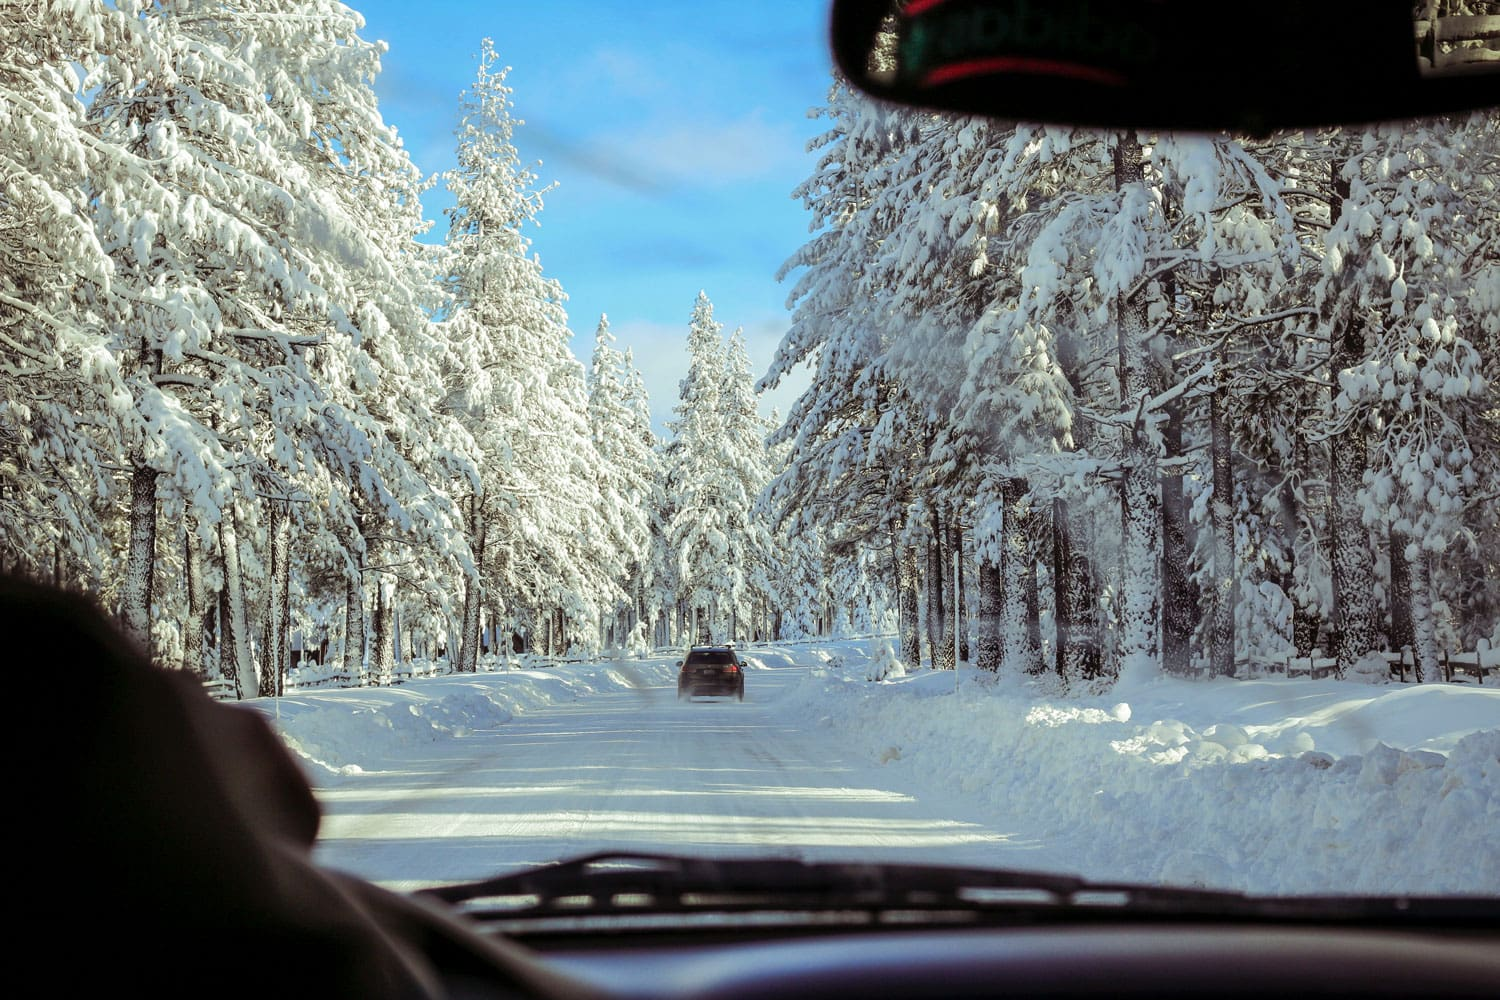 My best tips for a safe winter road trip